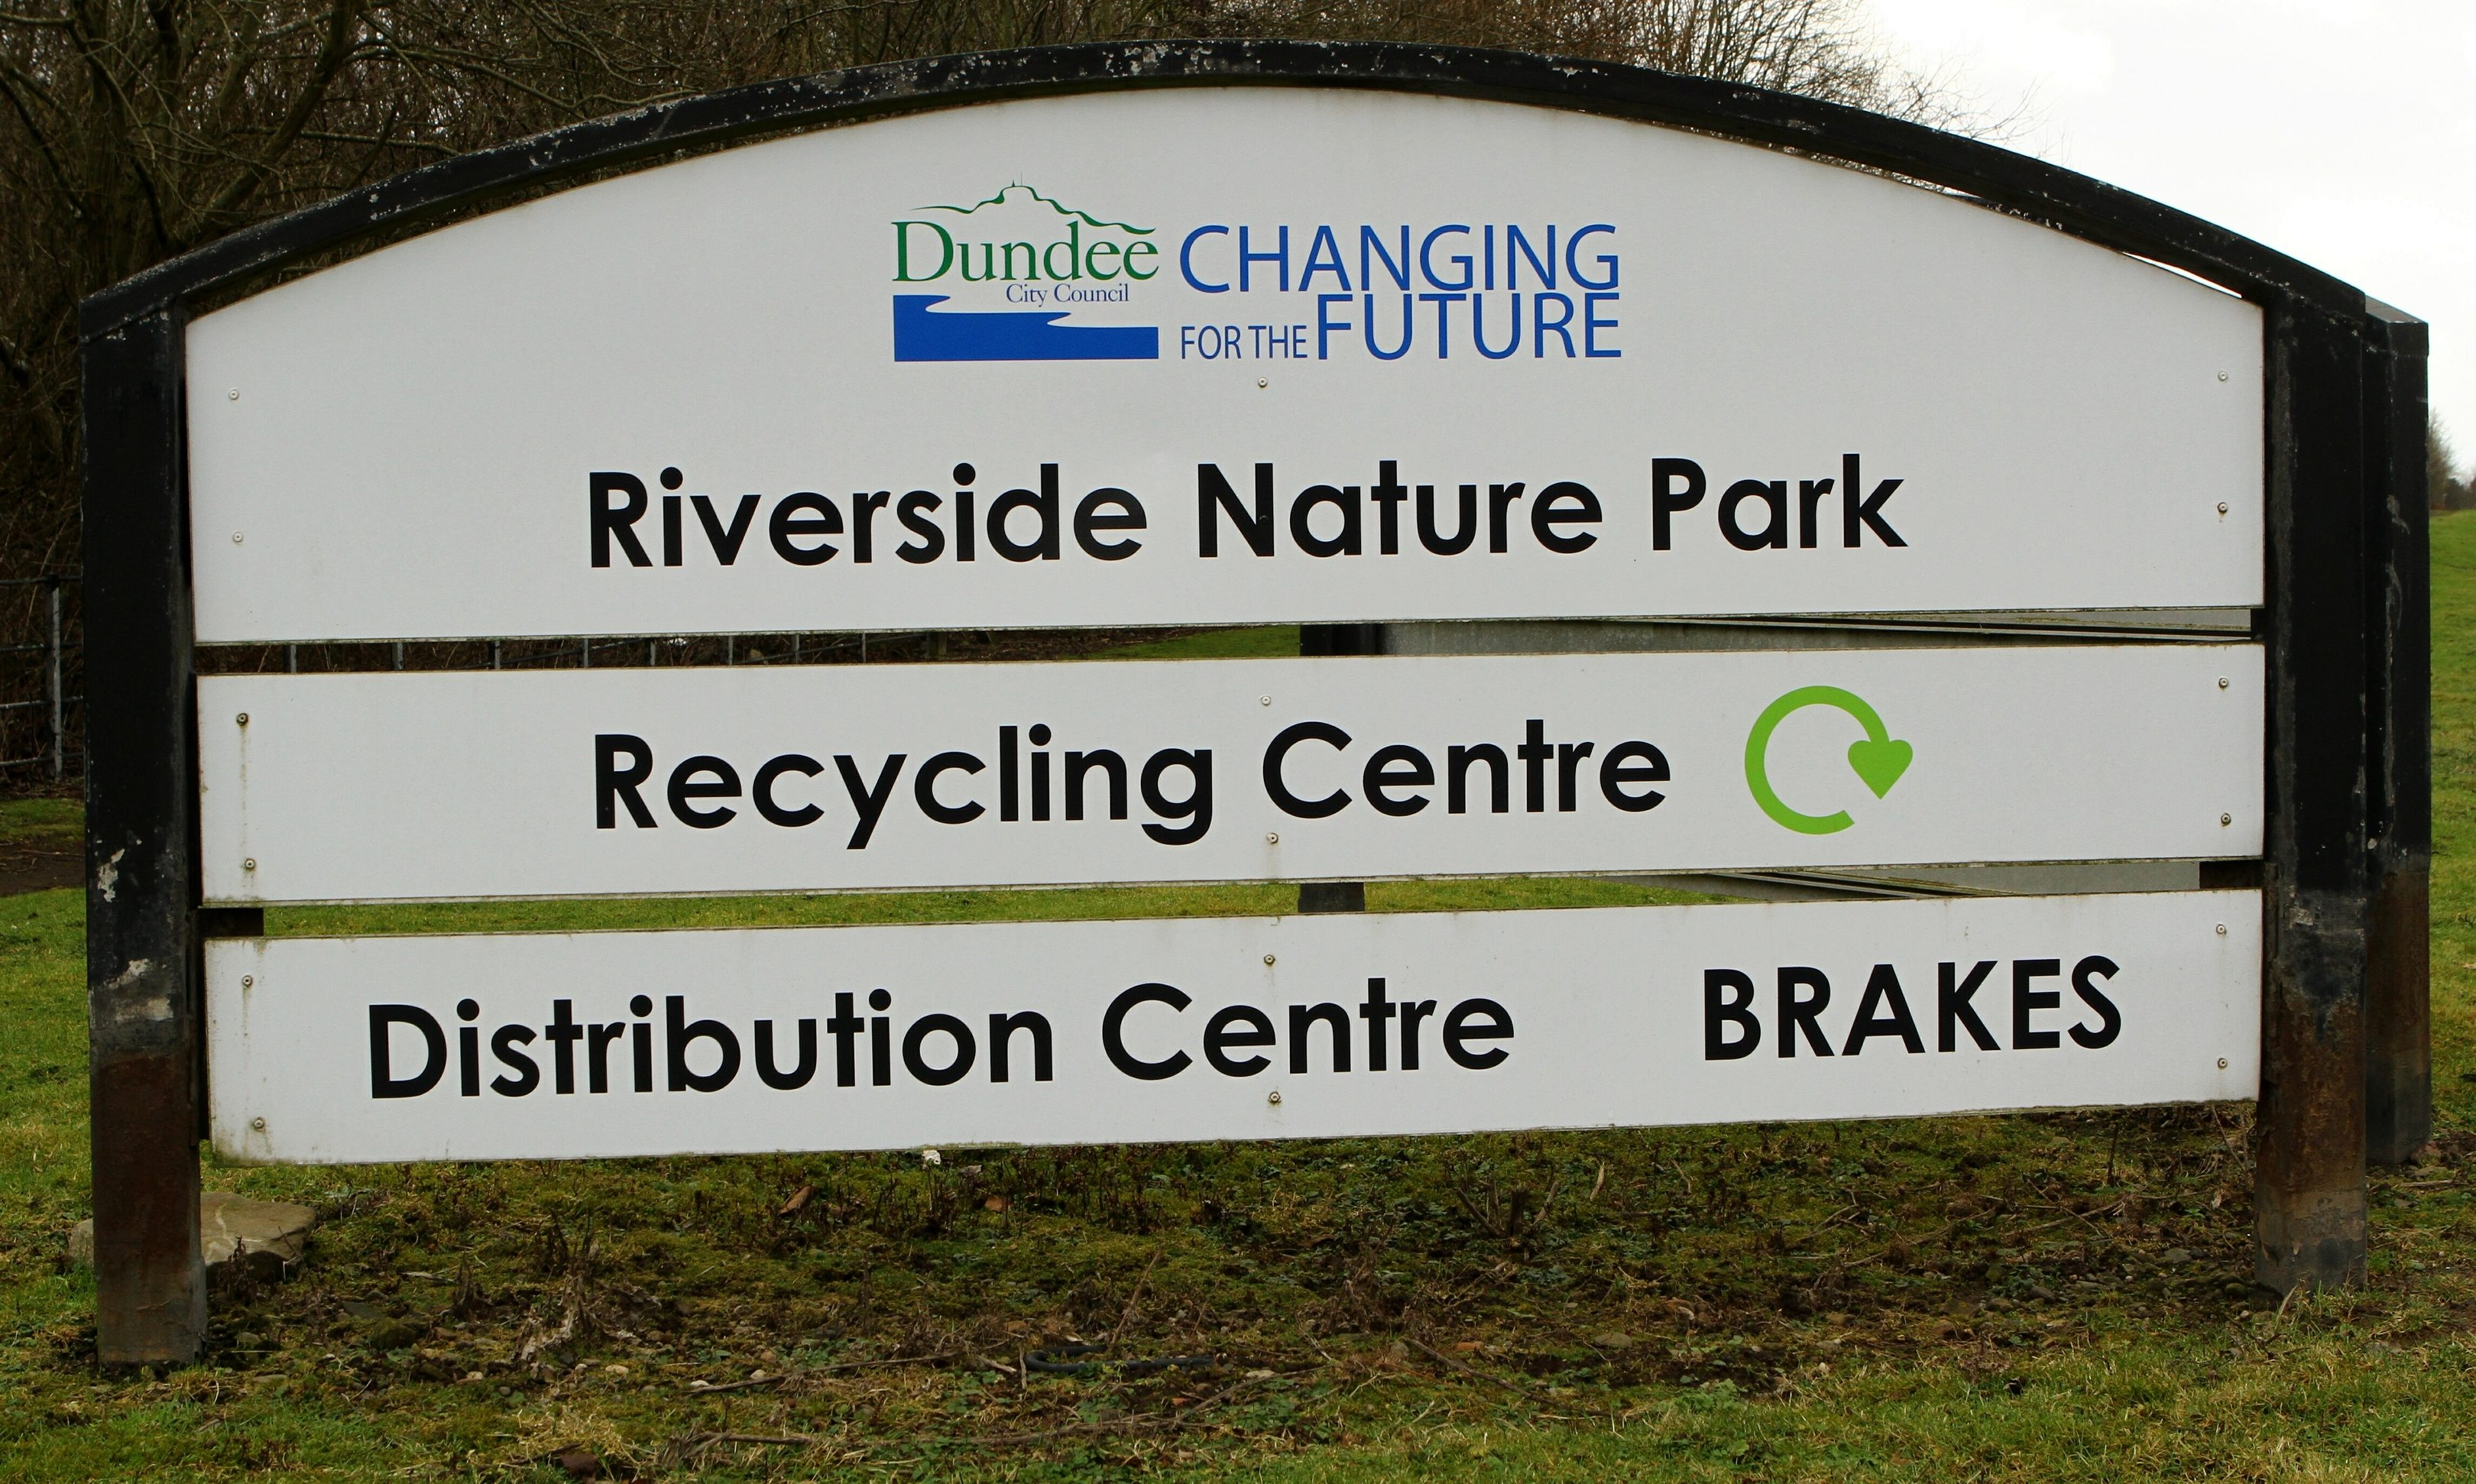 Riverside Nature Park, the site of the former Riverside Landfill.